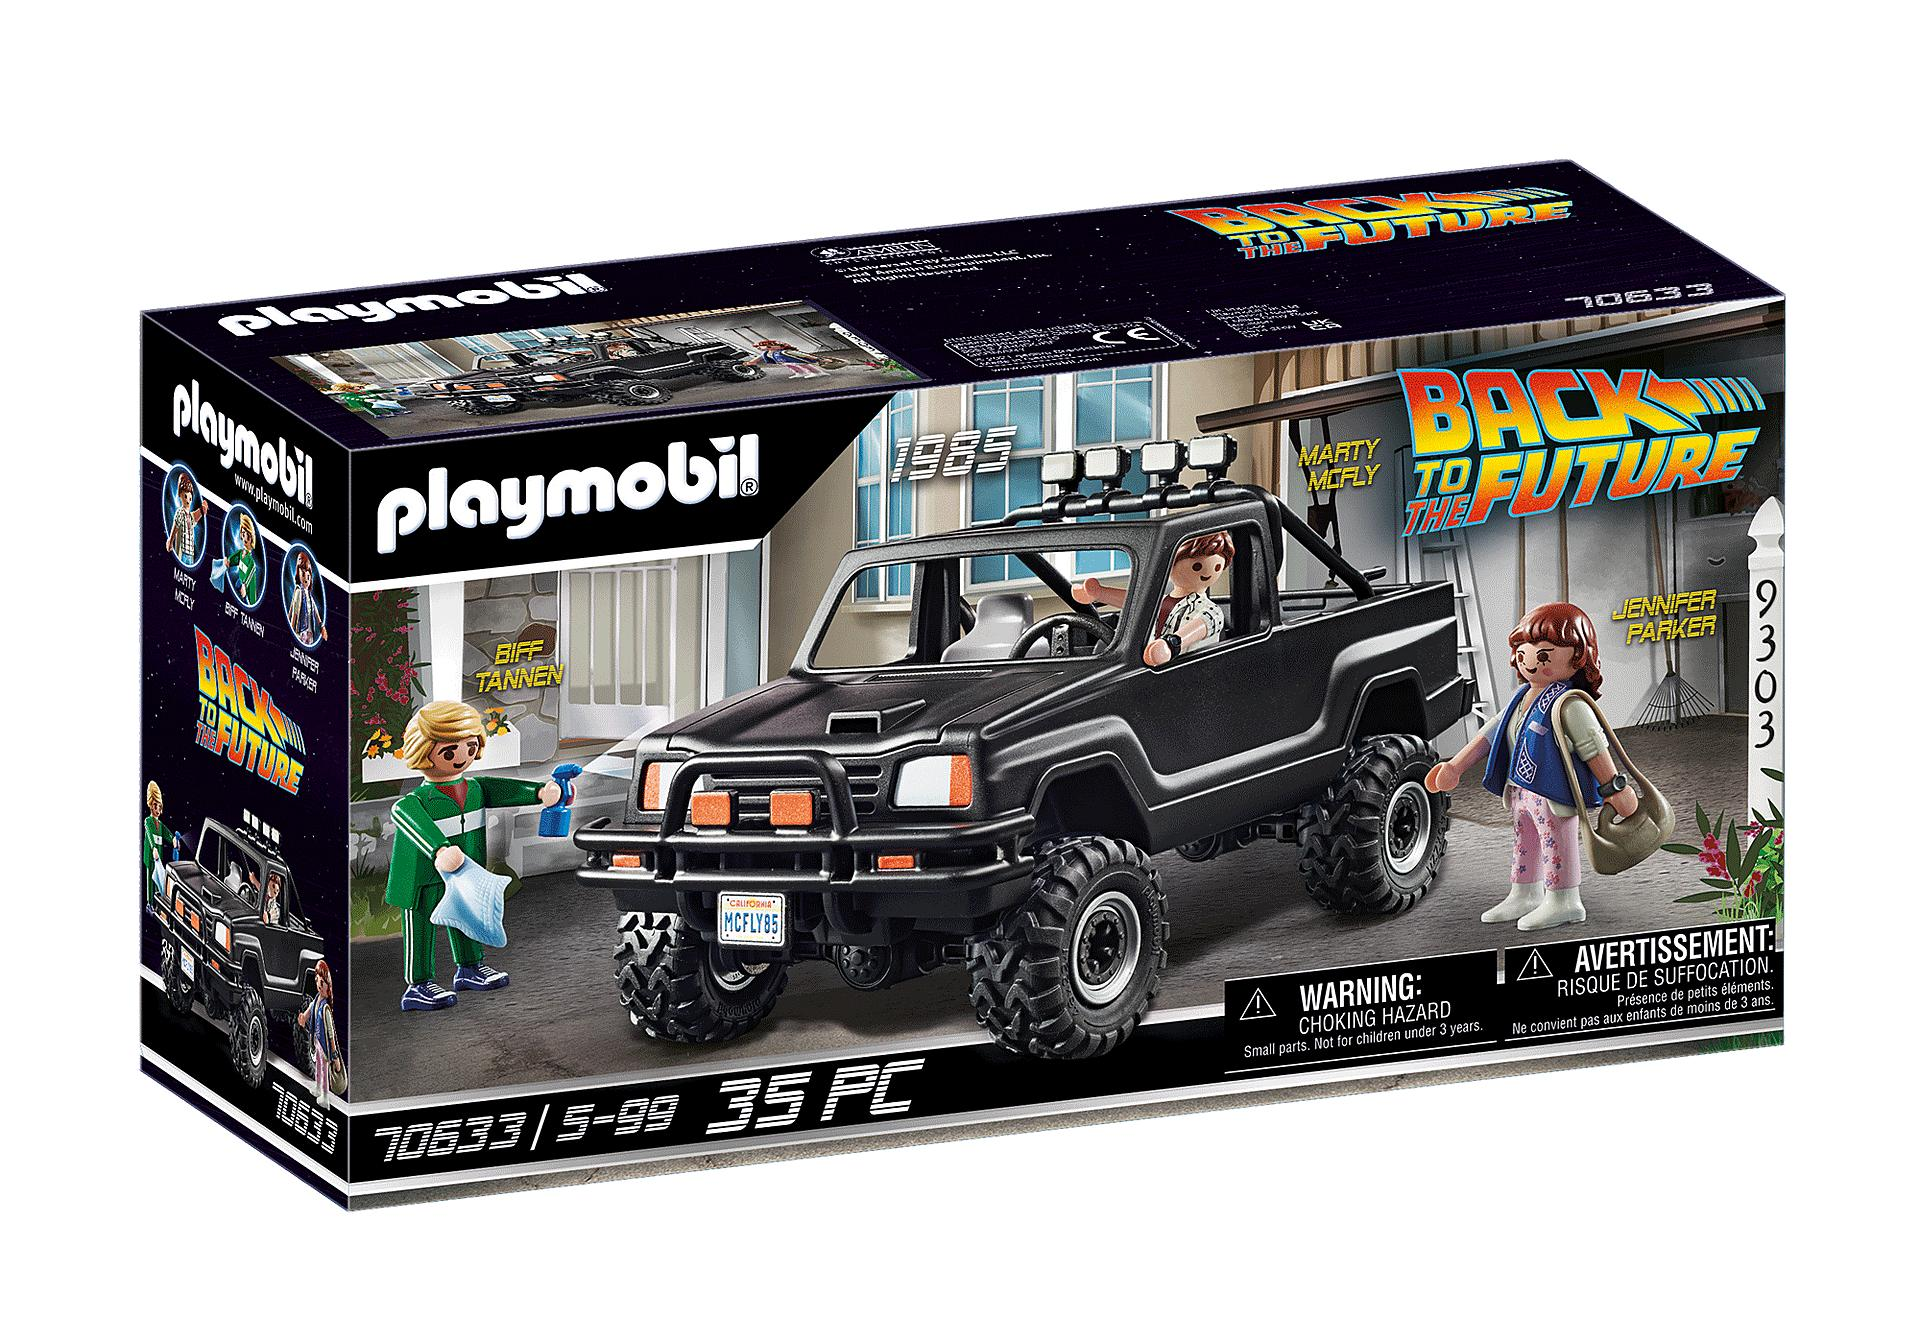 PLAYMOBIL 70633 BACK TO THE FUTURE,  CAMIONETA PICK UP DE MARTY